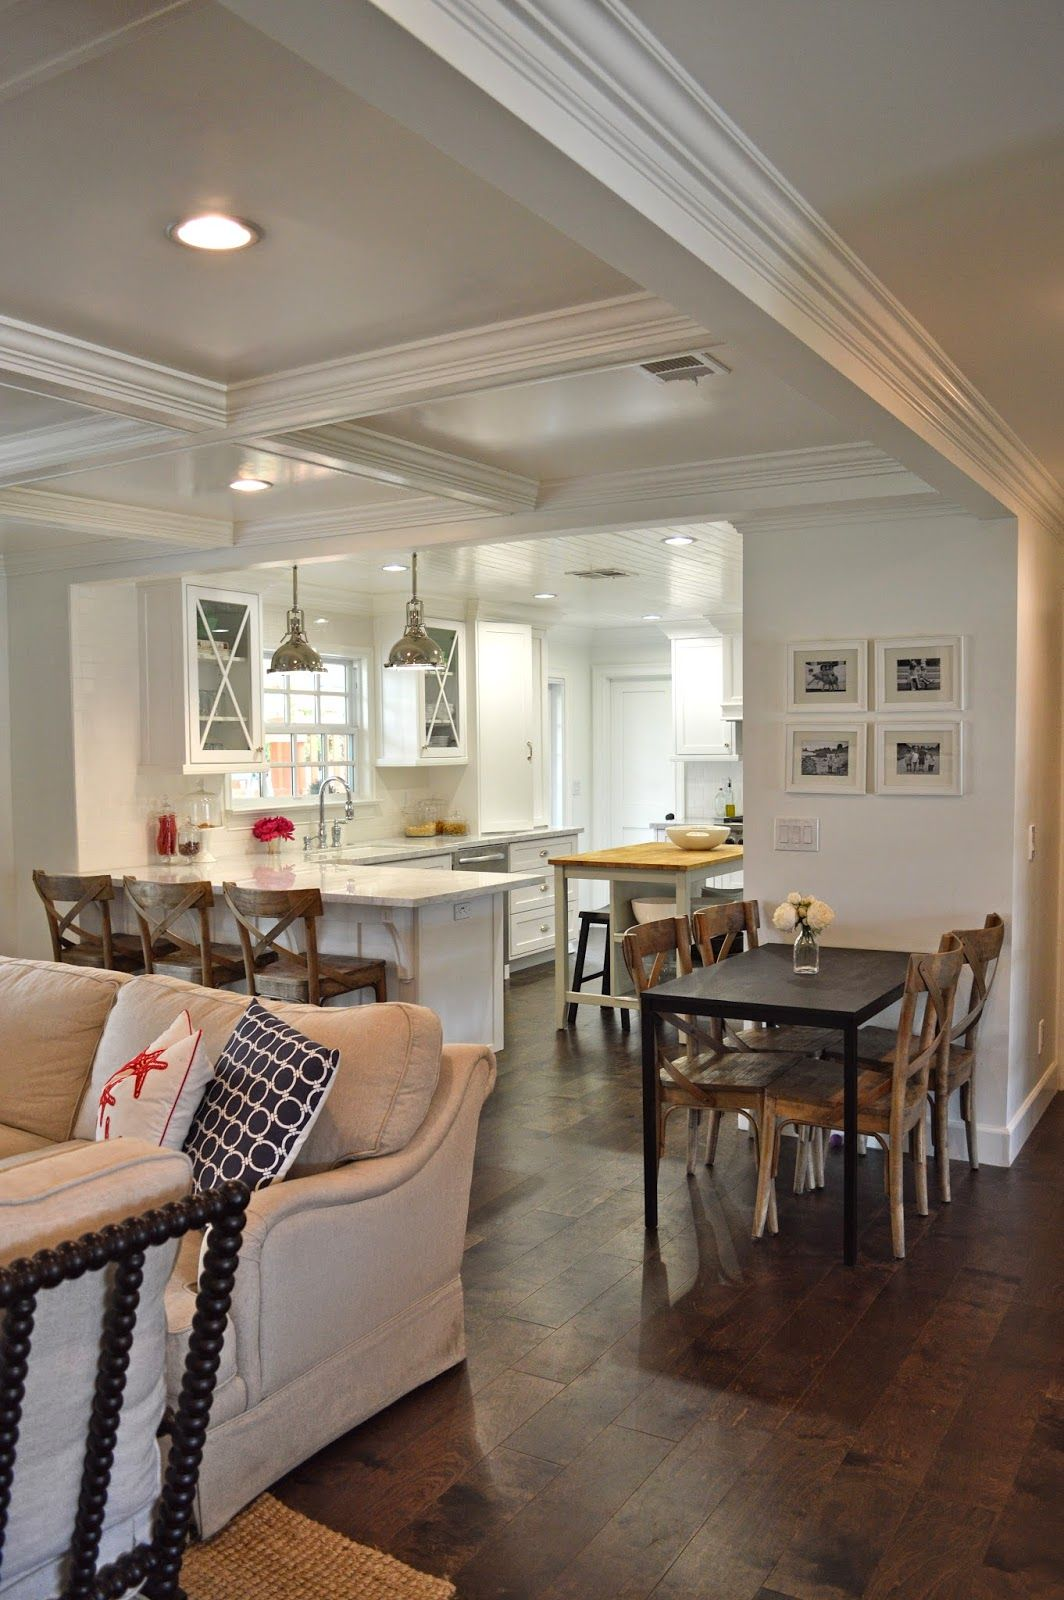 Cape Cod Kitchen Design Ideas Lowes Pendant Lights Love This The Ranch Renovation Great Room